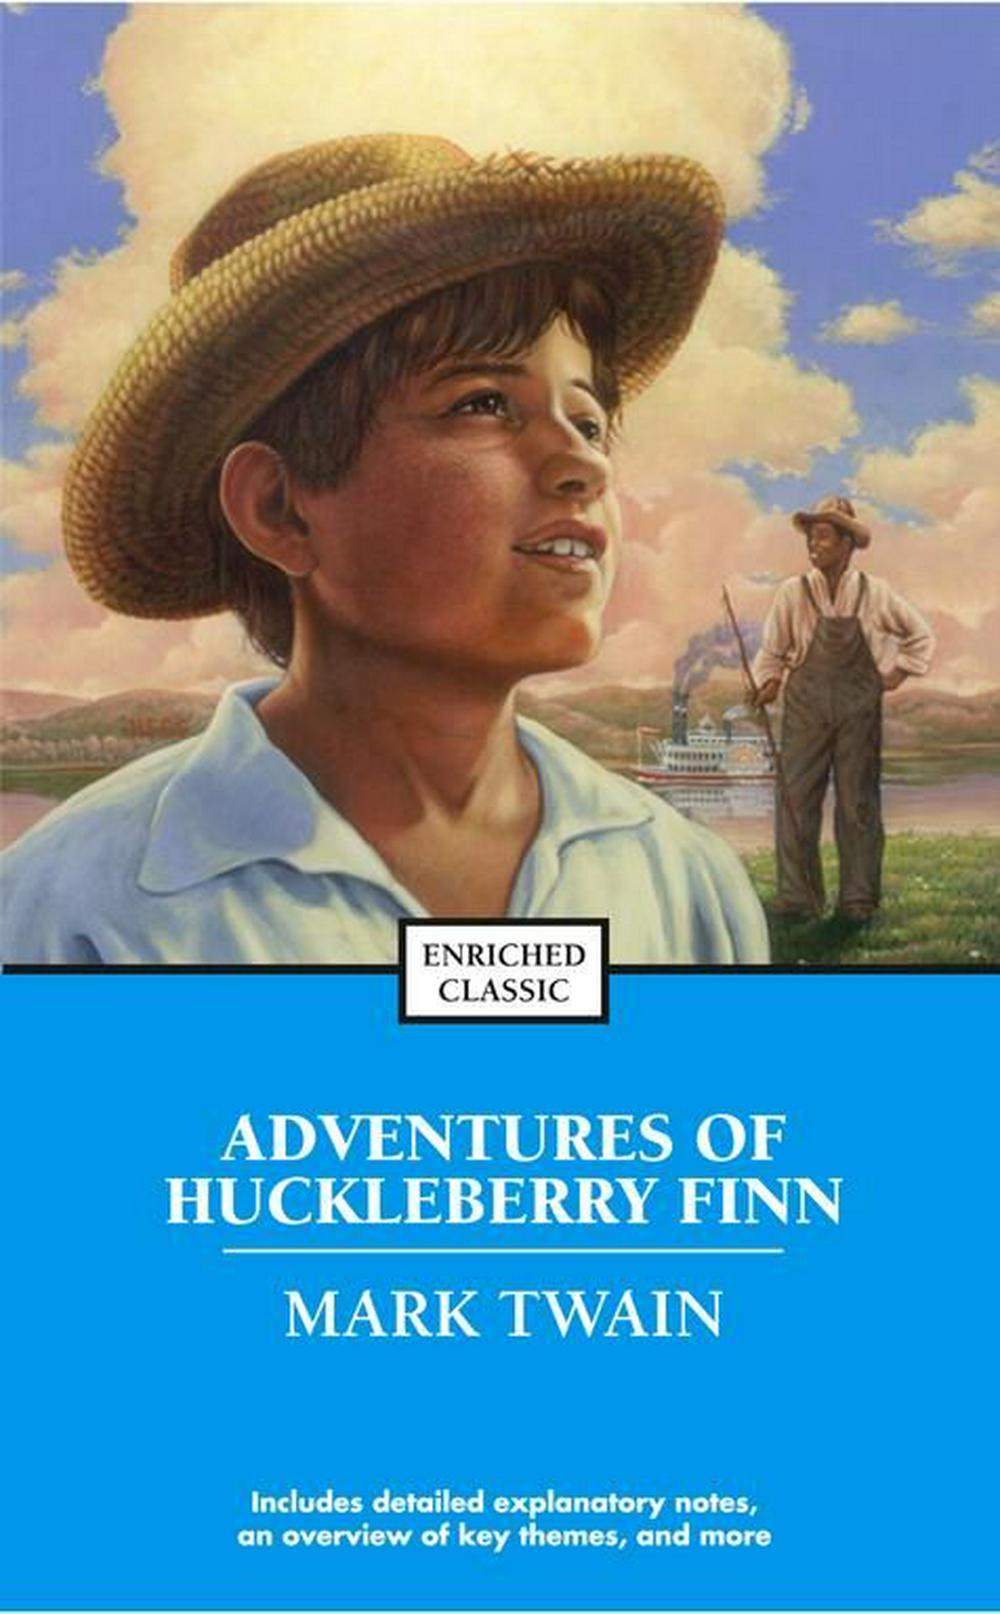 an overview of the adventures of huckleberry finn written by mark twain Of the adventures of huckleberry finn by mark twain among the most controversial books ever published, the adventures adventures of huckleberry finn summary.